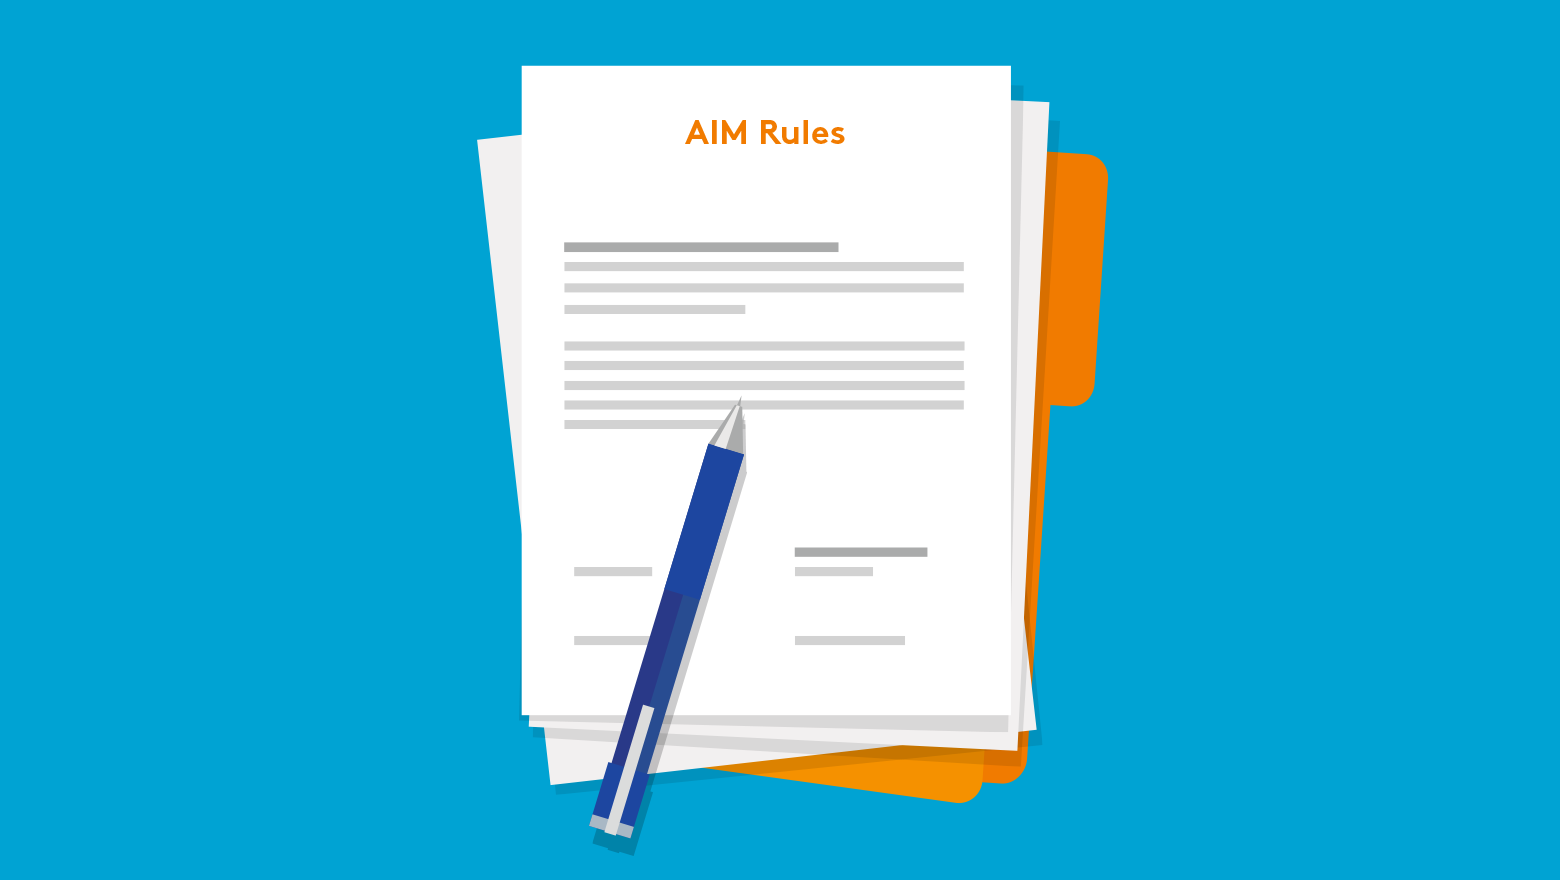 Revised AIM Rules for listed companies